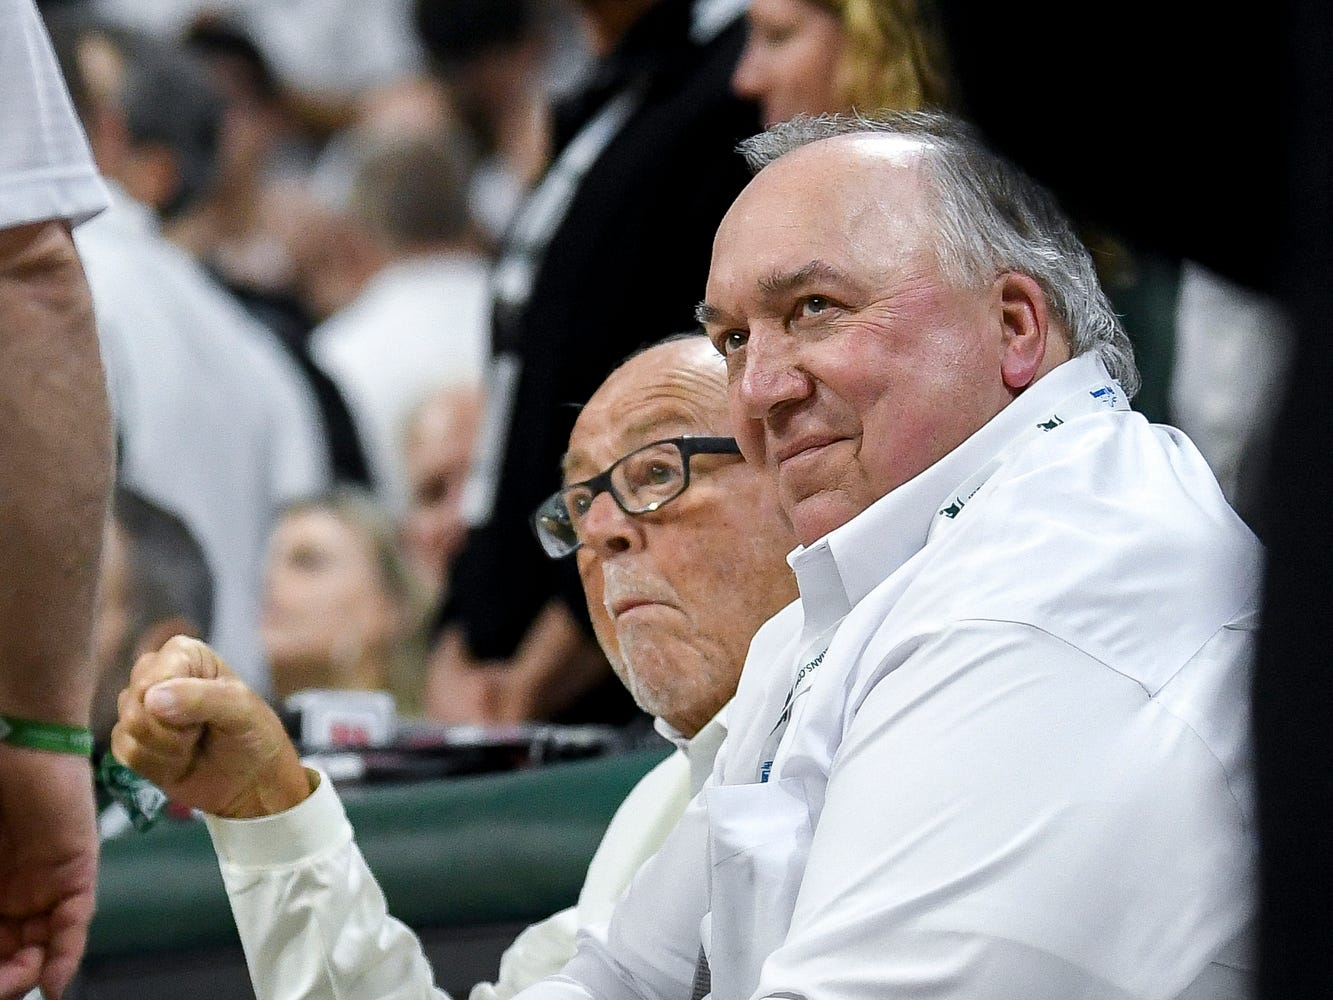 Former Michigan governor and former MSU interim president John Engler, right, and Peter F. Secchia watch the game court side during the second half on Saturday, March 9, 2019, at the Breslin Center in East Lansing.